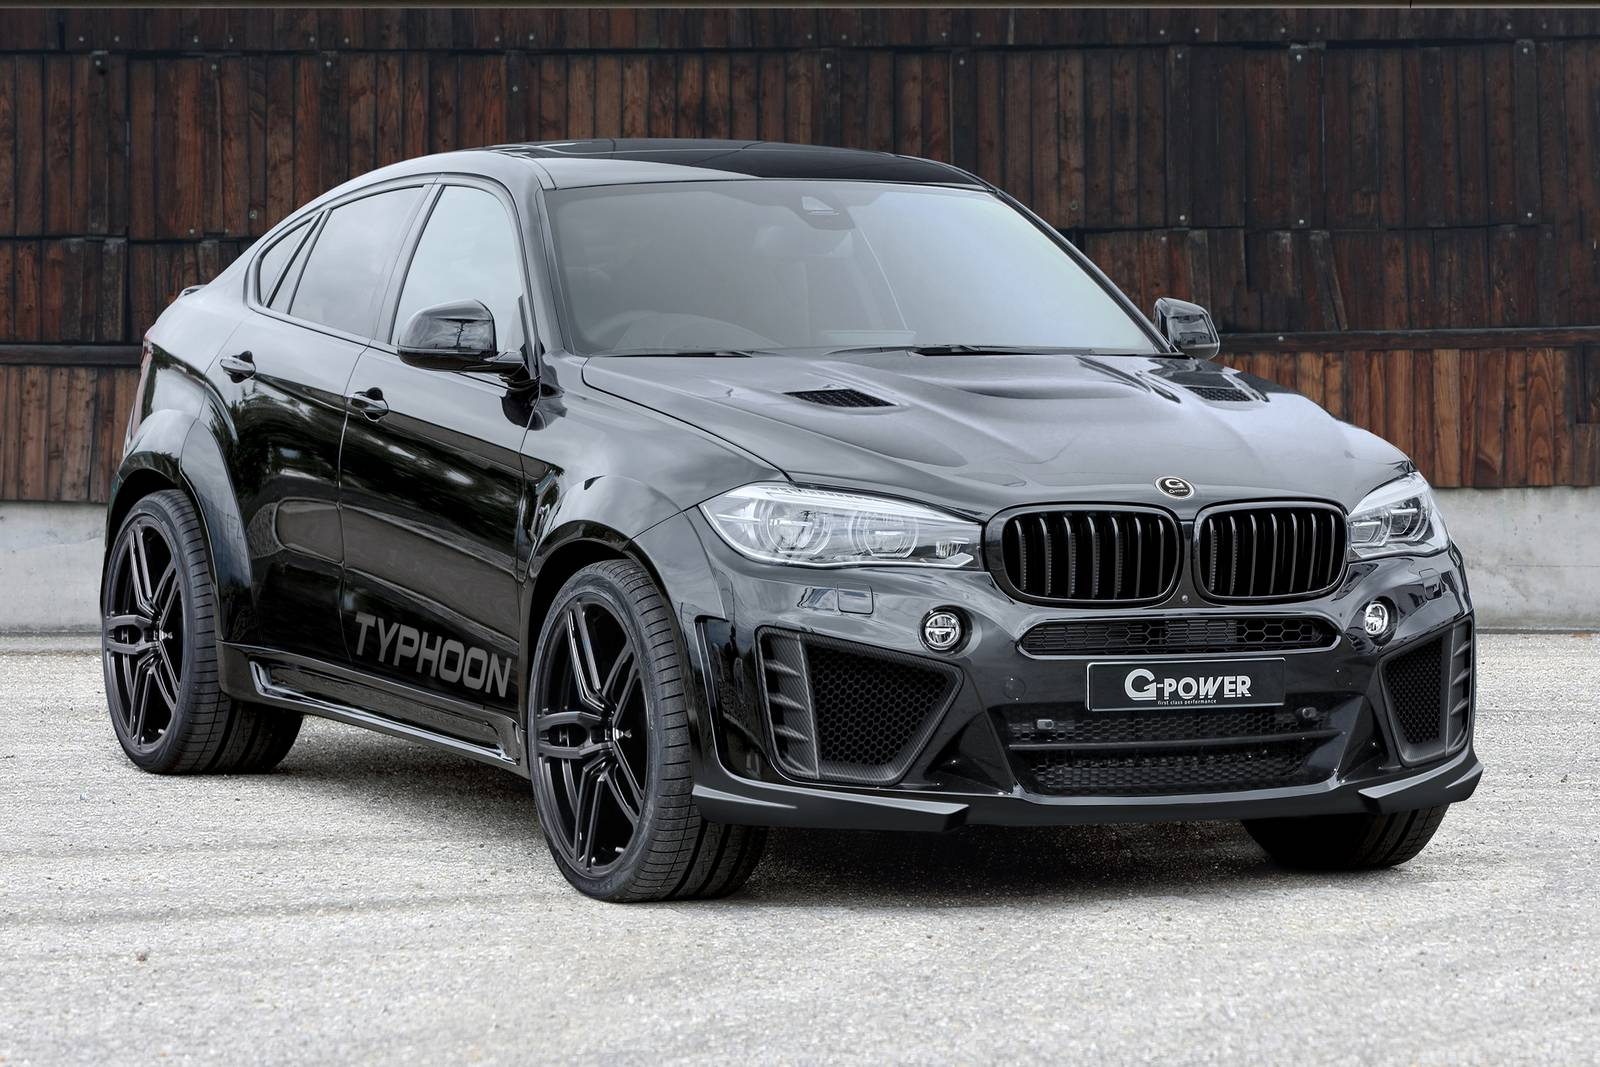 official 750hp g power bmw x6 m typhoon gtspirit. Black Bedroom Furniture Sets. Home Design Ideas